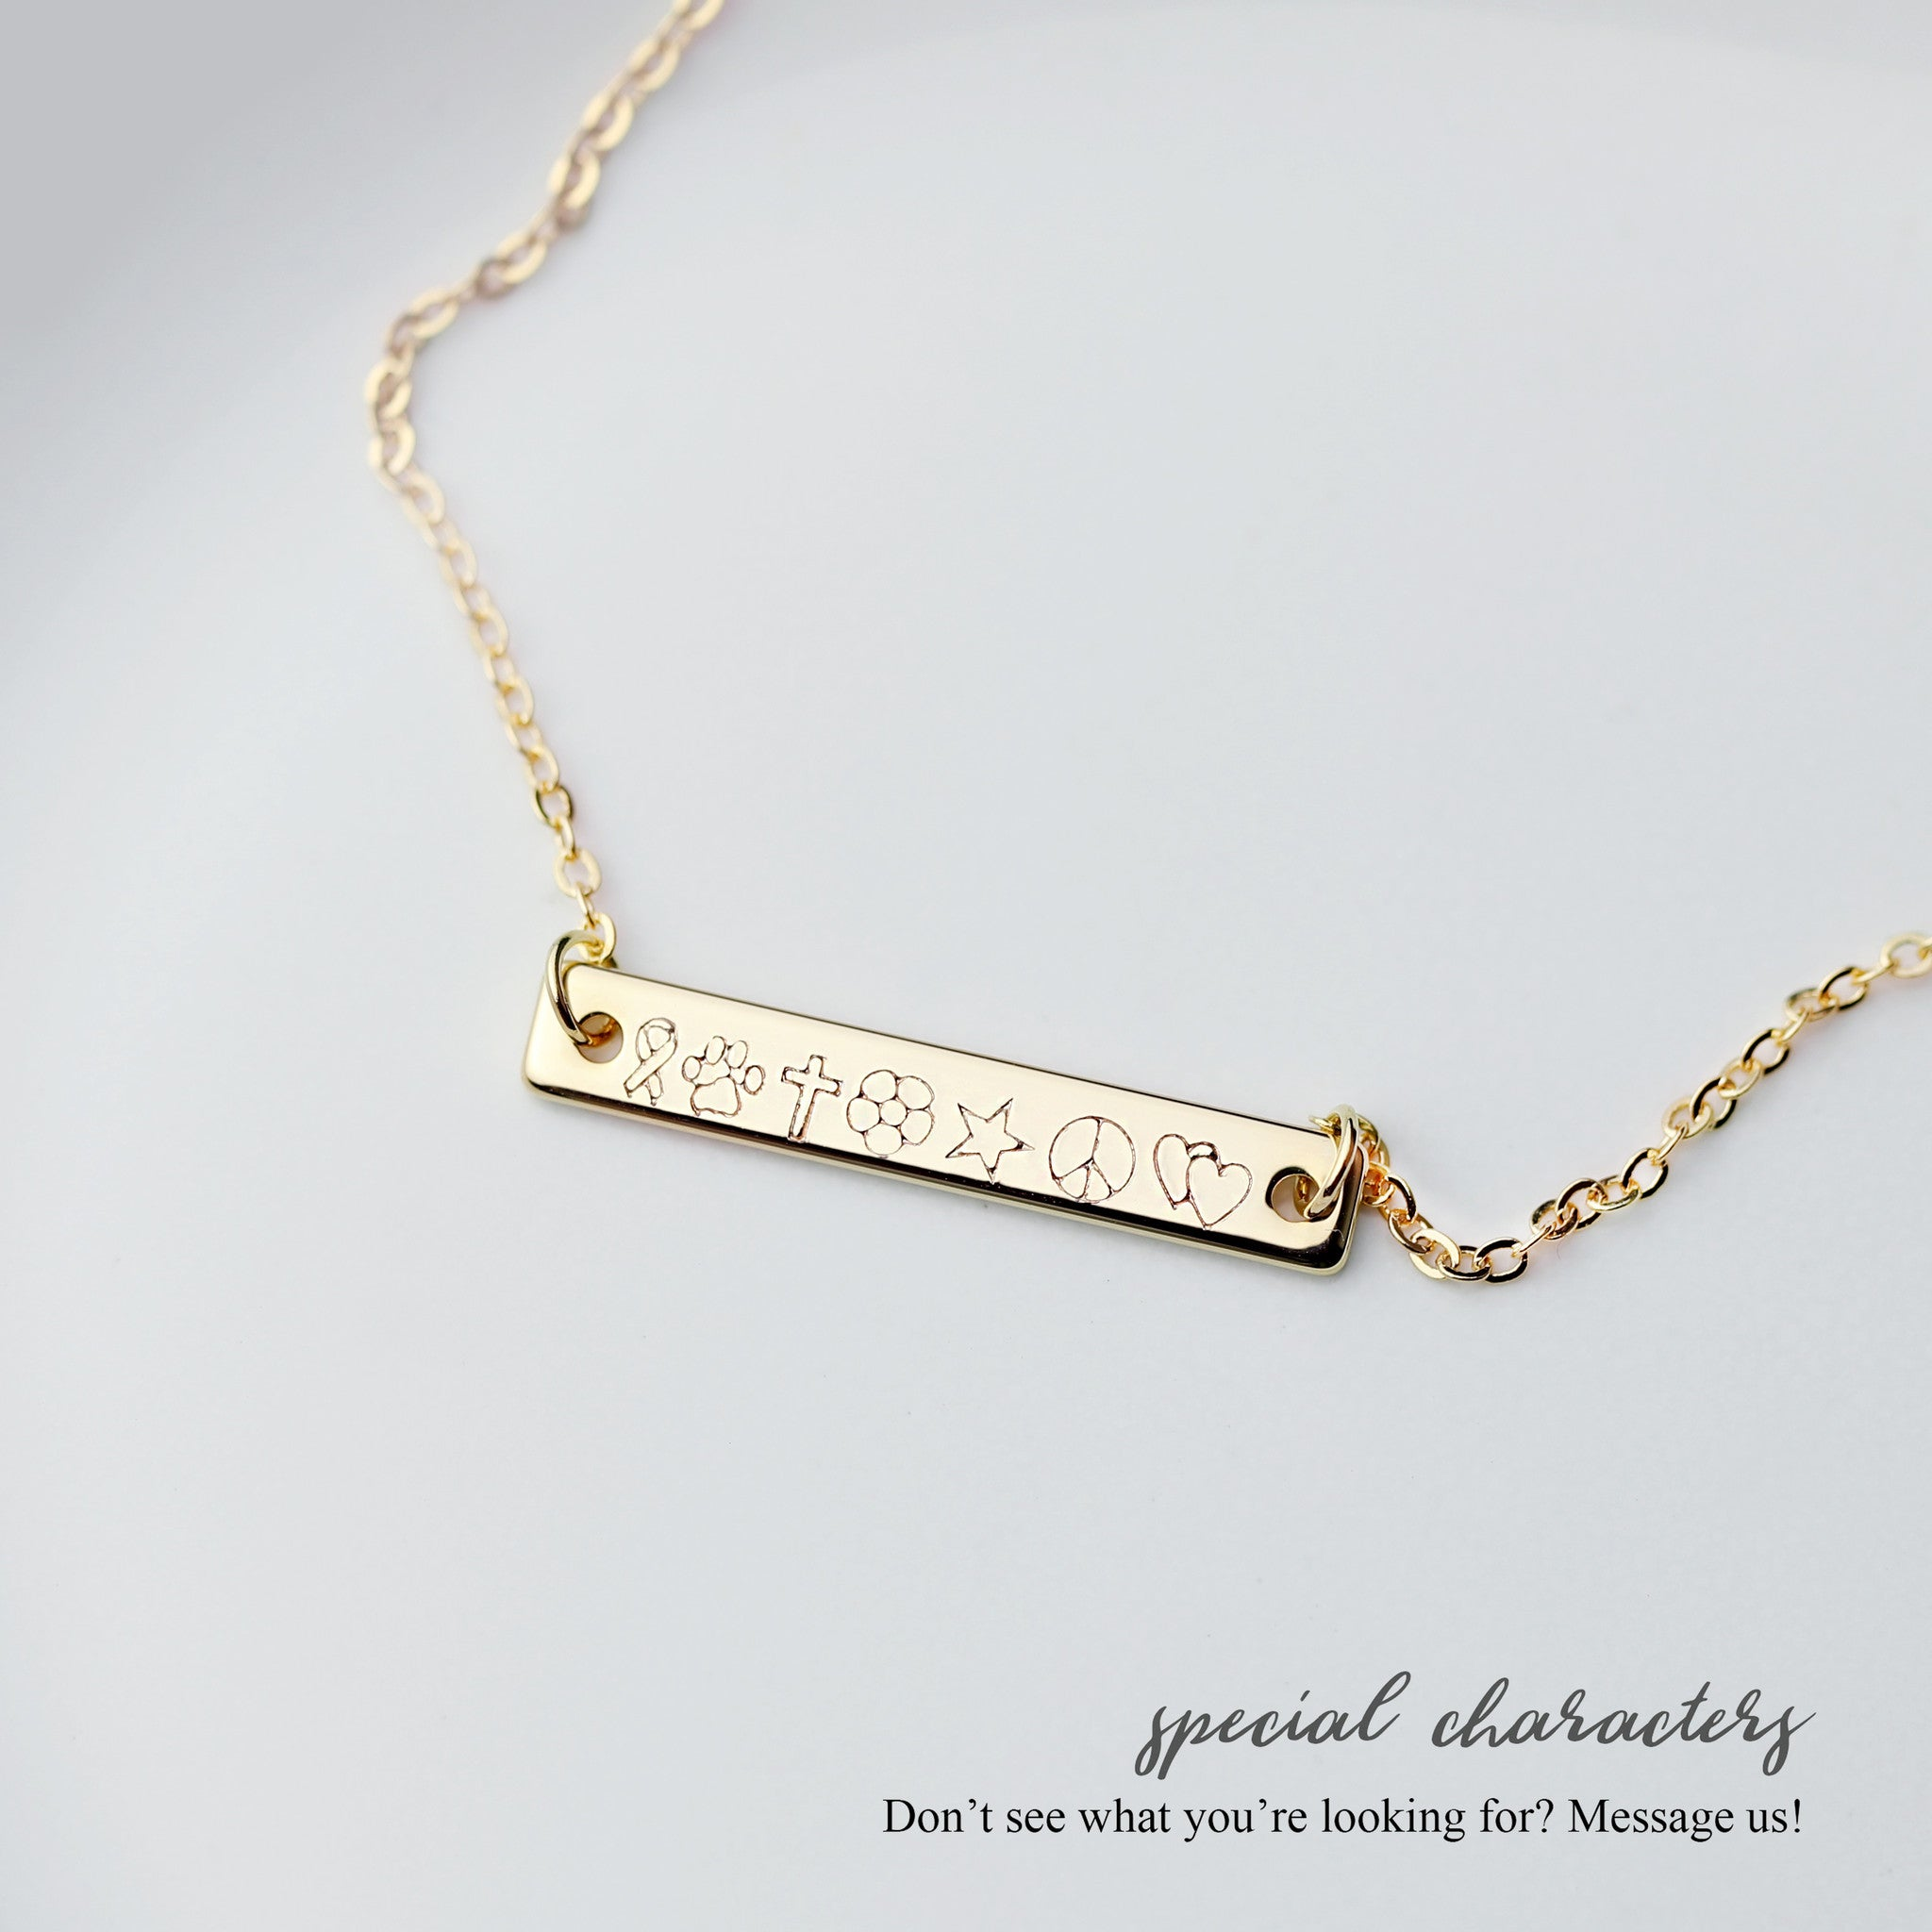 diamond rebecca necklace dana white sadie bar gold pendant product designs